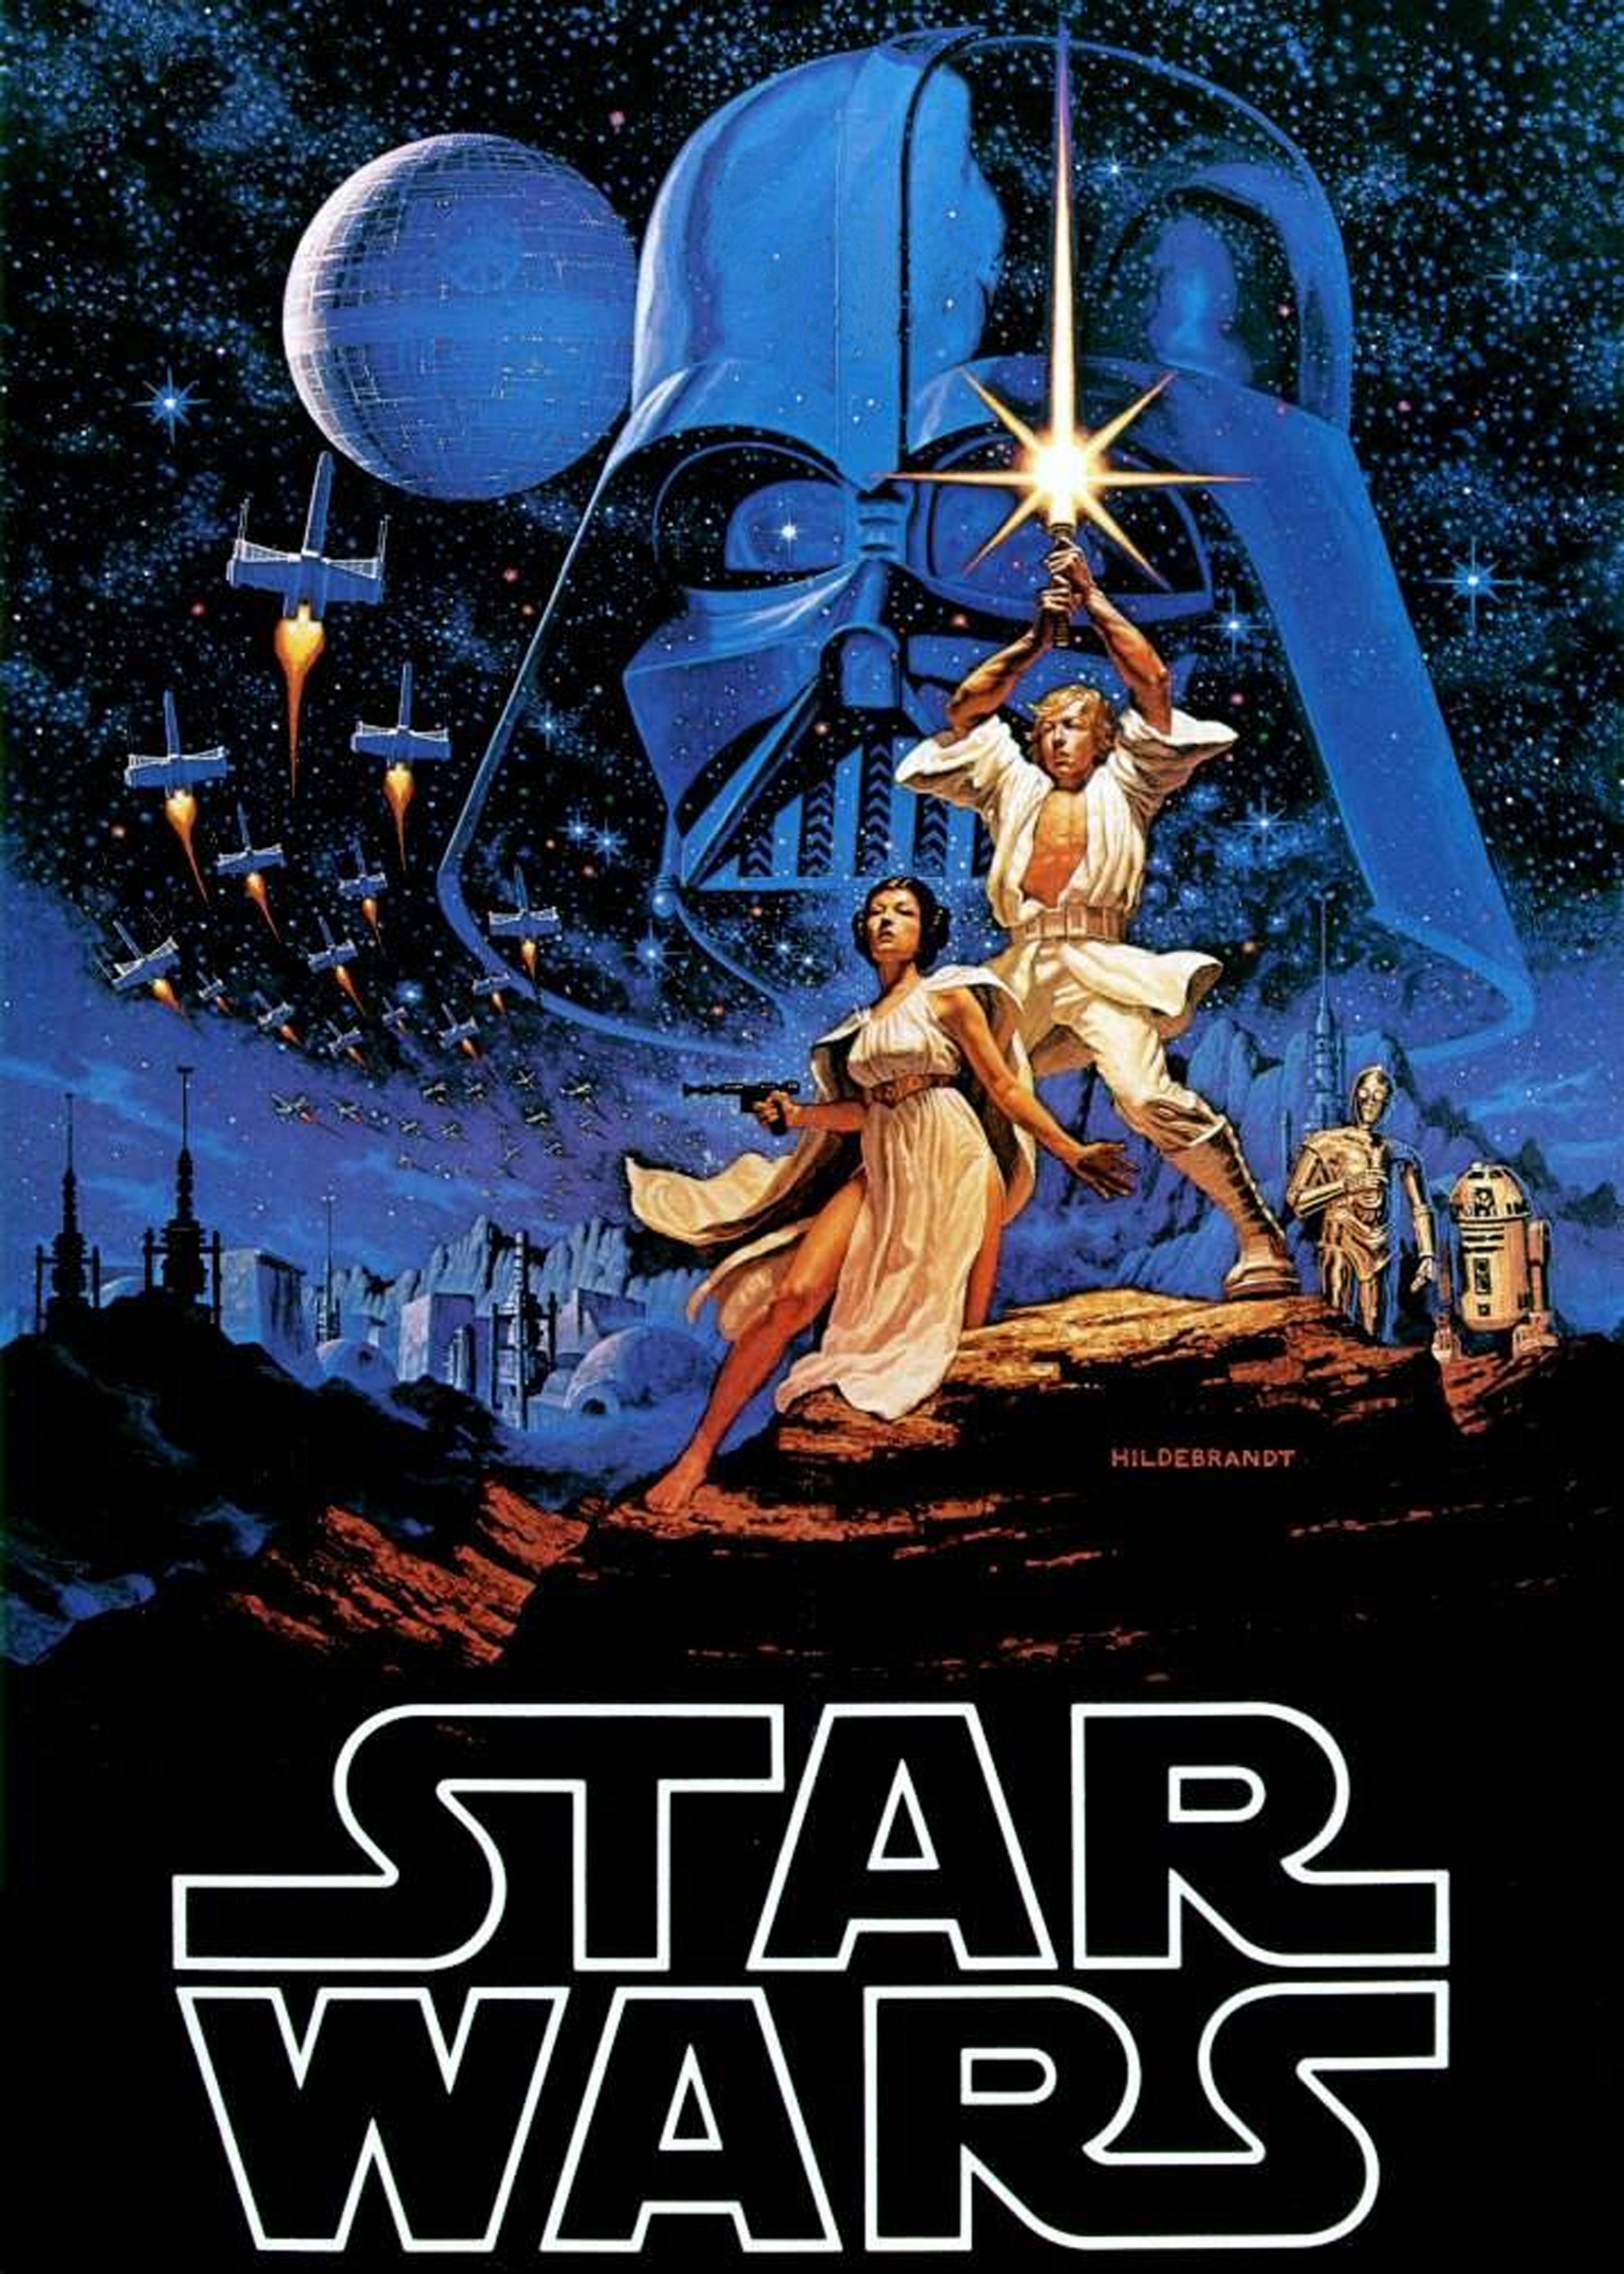 Star Wars Poster The Real History That Inspired Star Wars History In